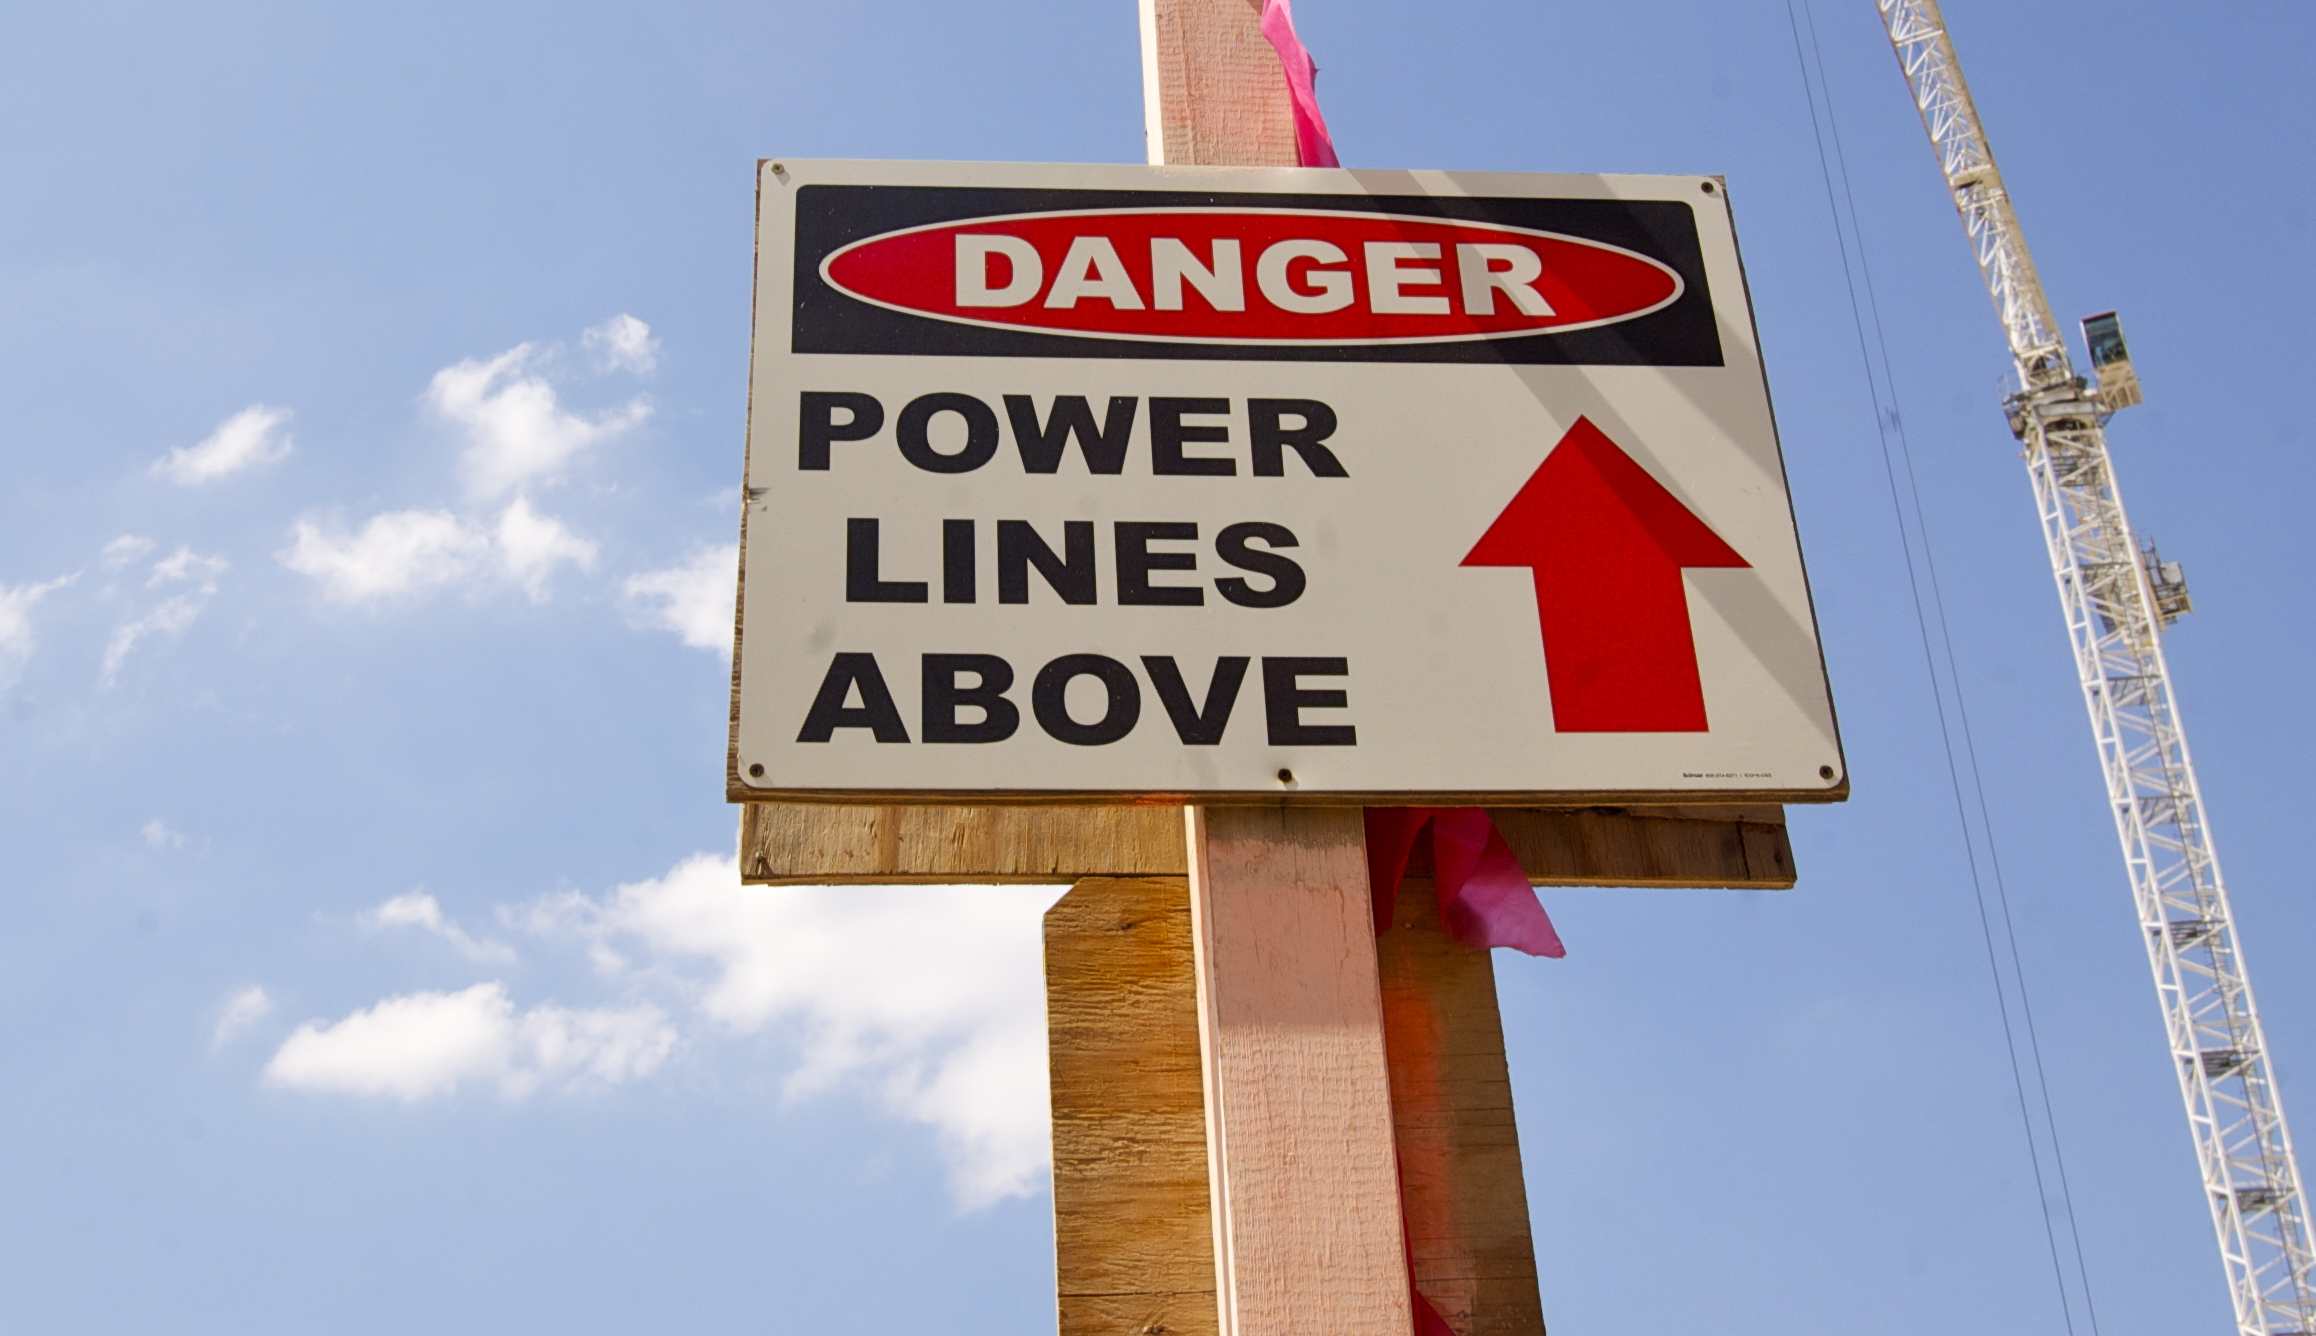 Danger! Power Lines Above